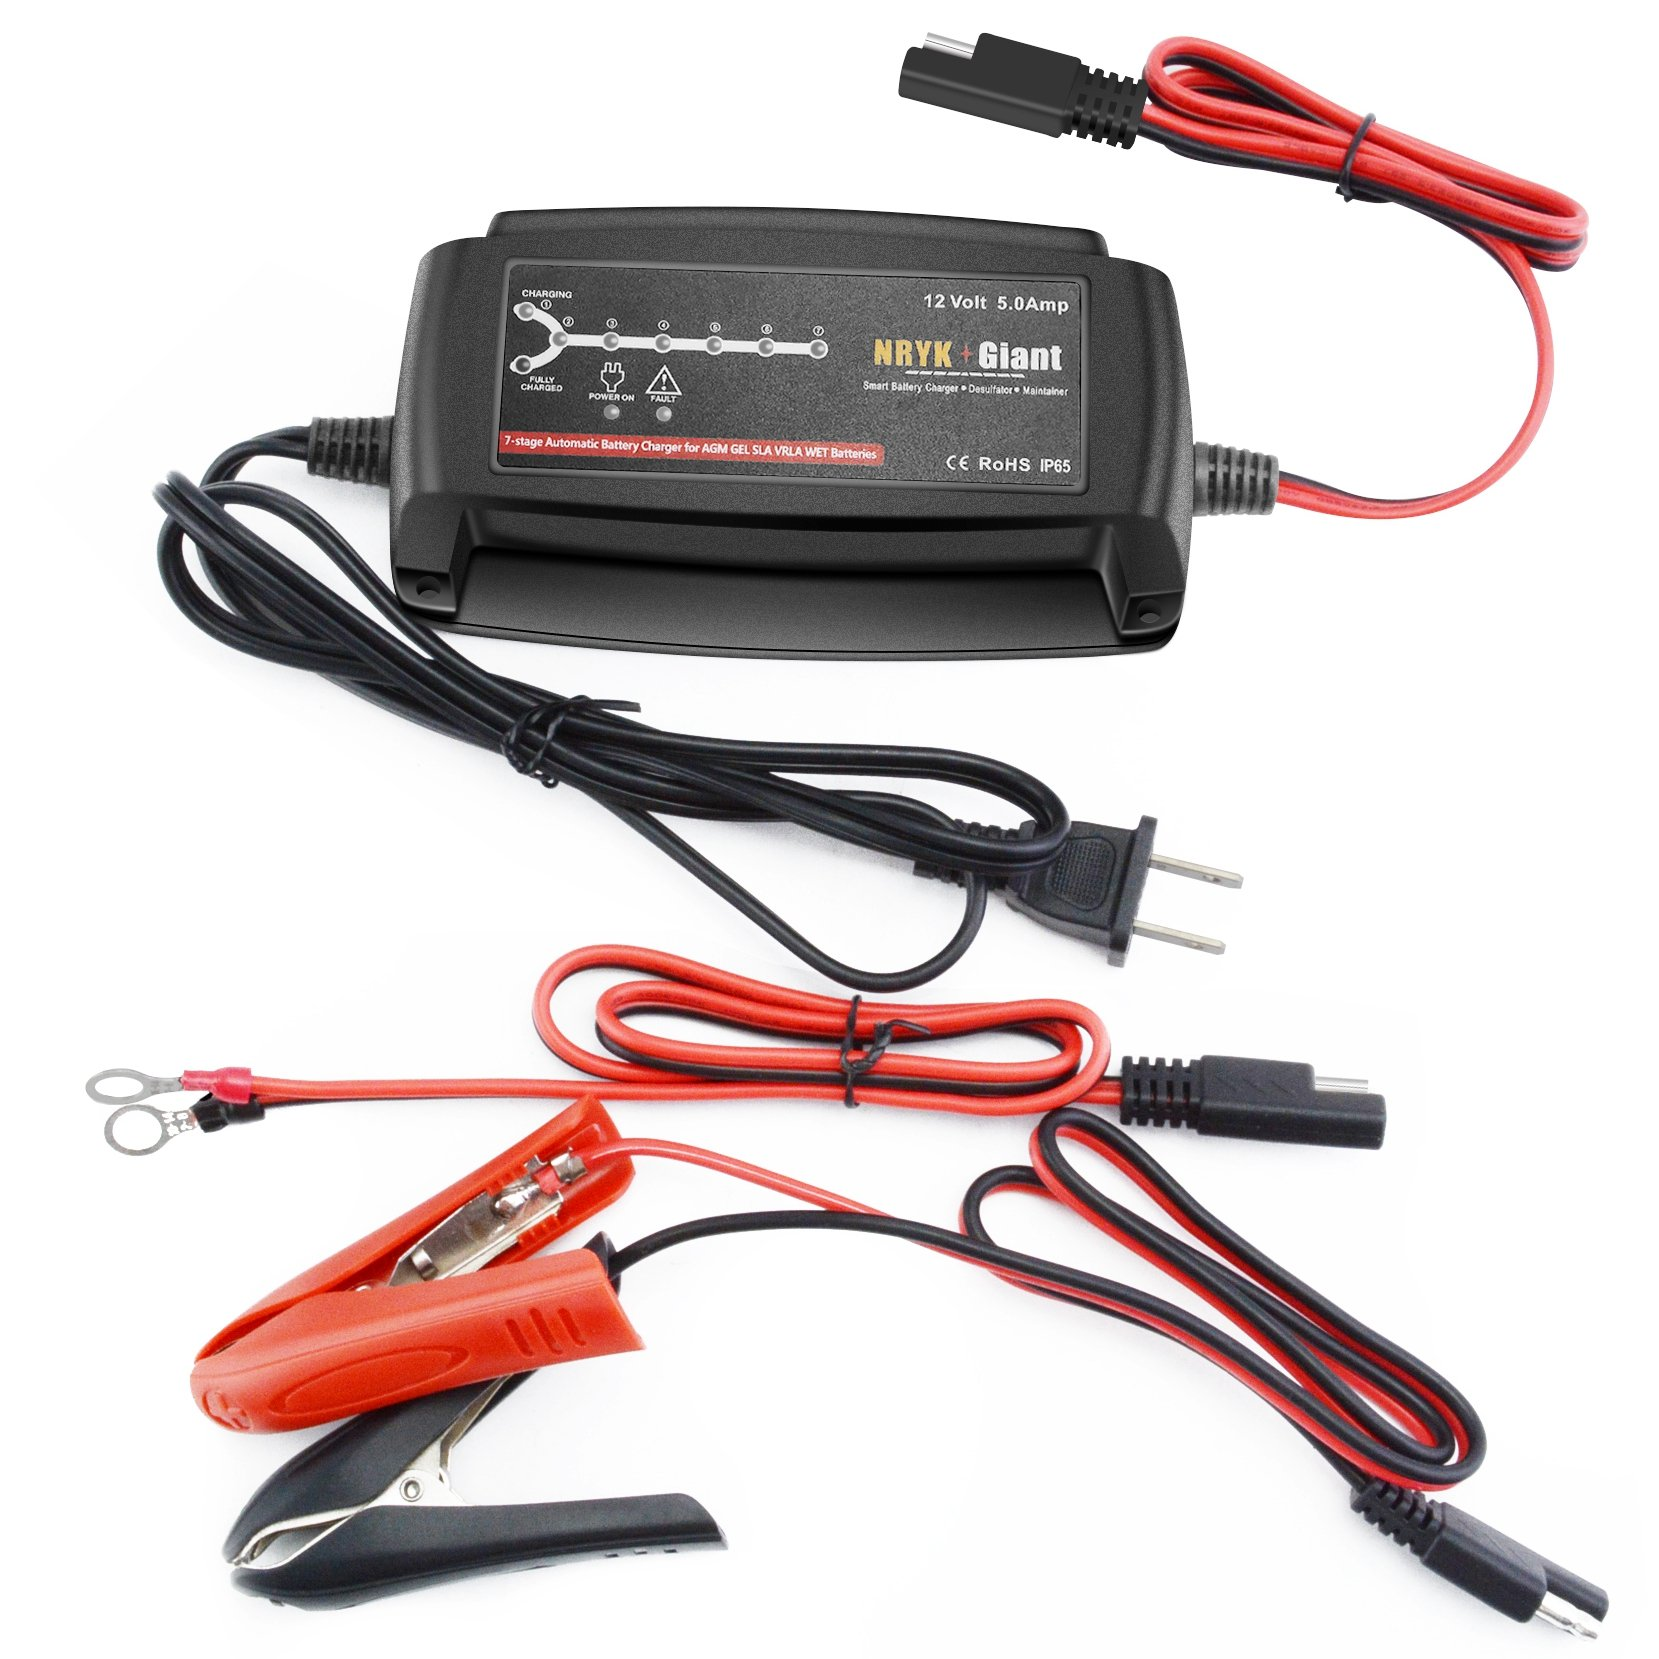 12 Volt 5 Amp 7-stage Car Battery Charger Maintainer for 20-120AH AGM GEL Battery by NRYK GIANT (Image #5)